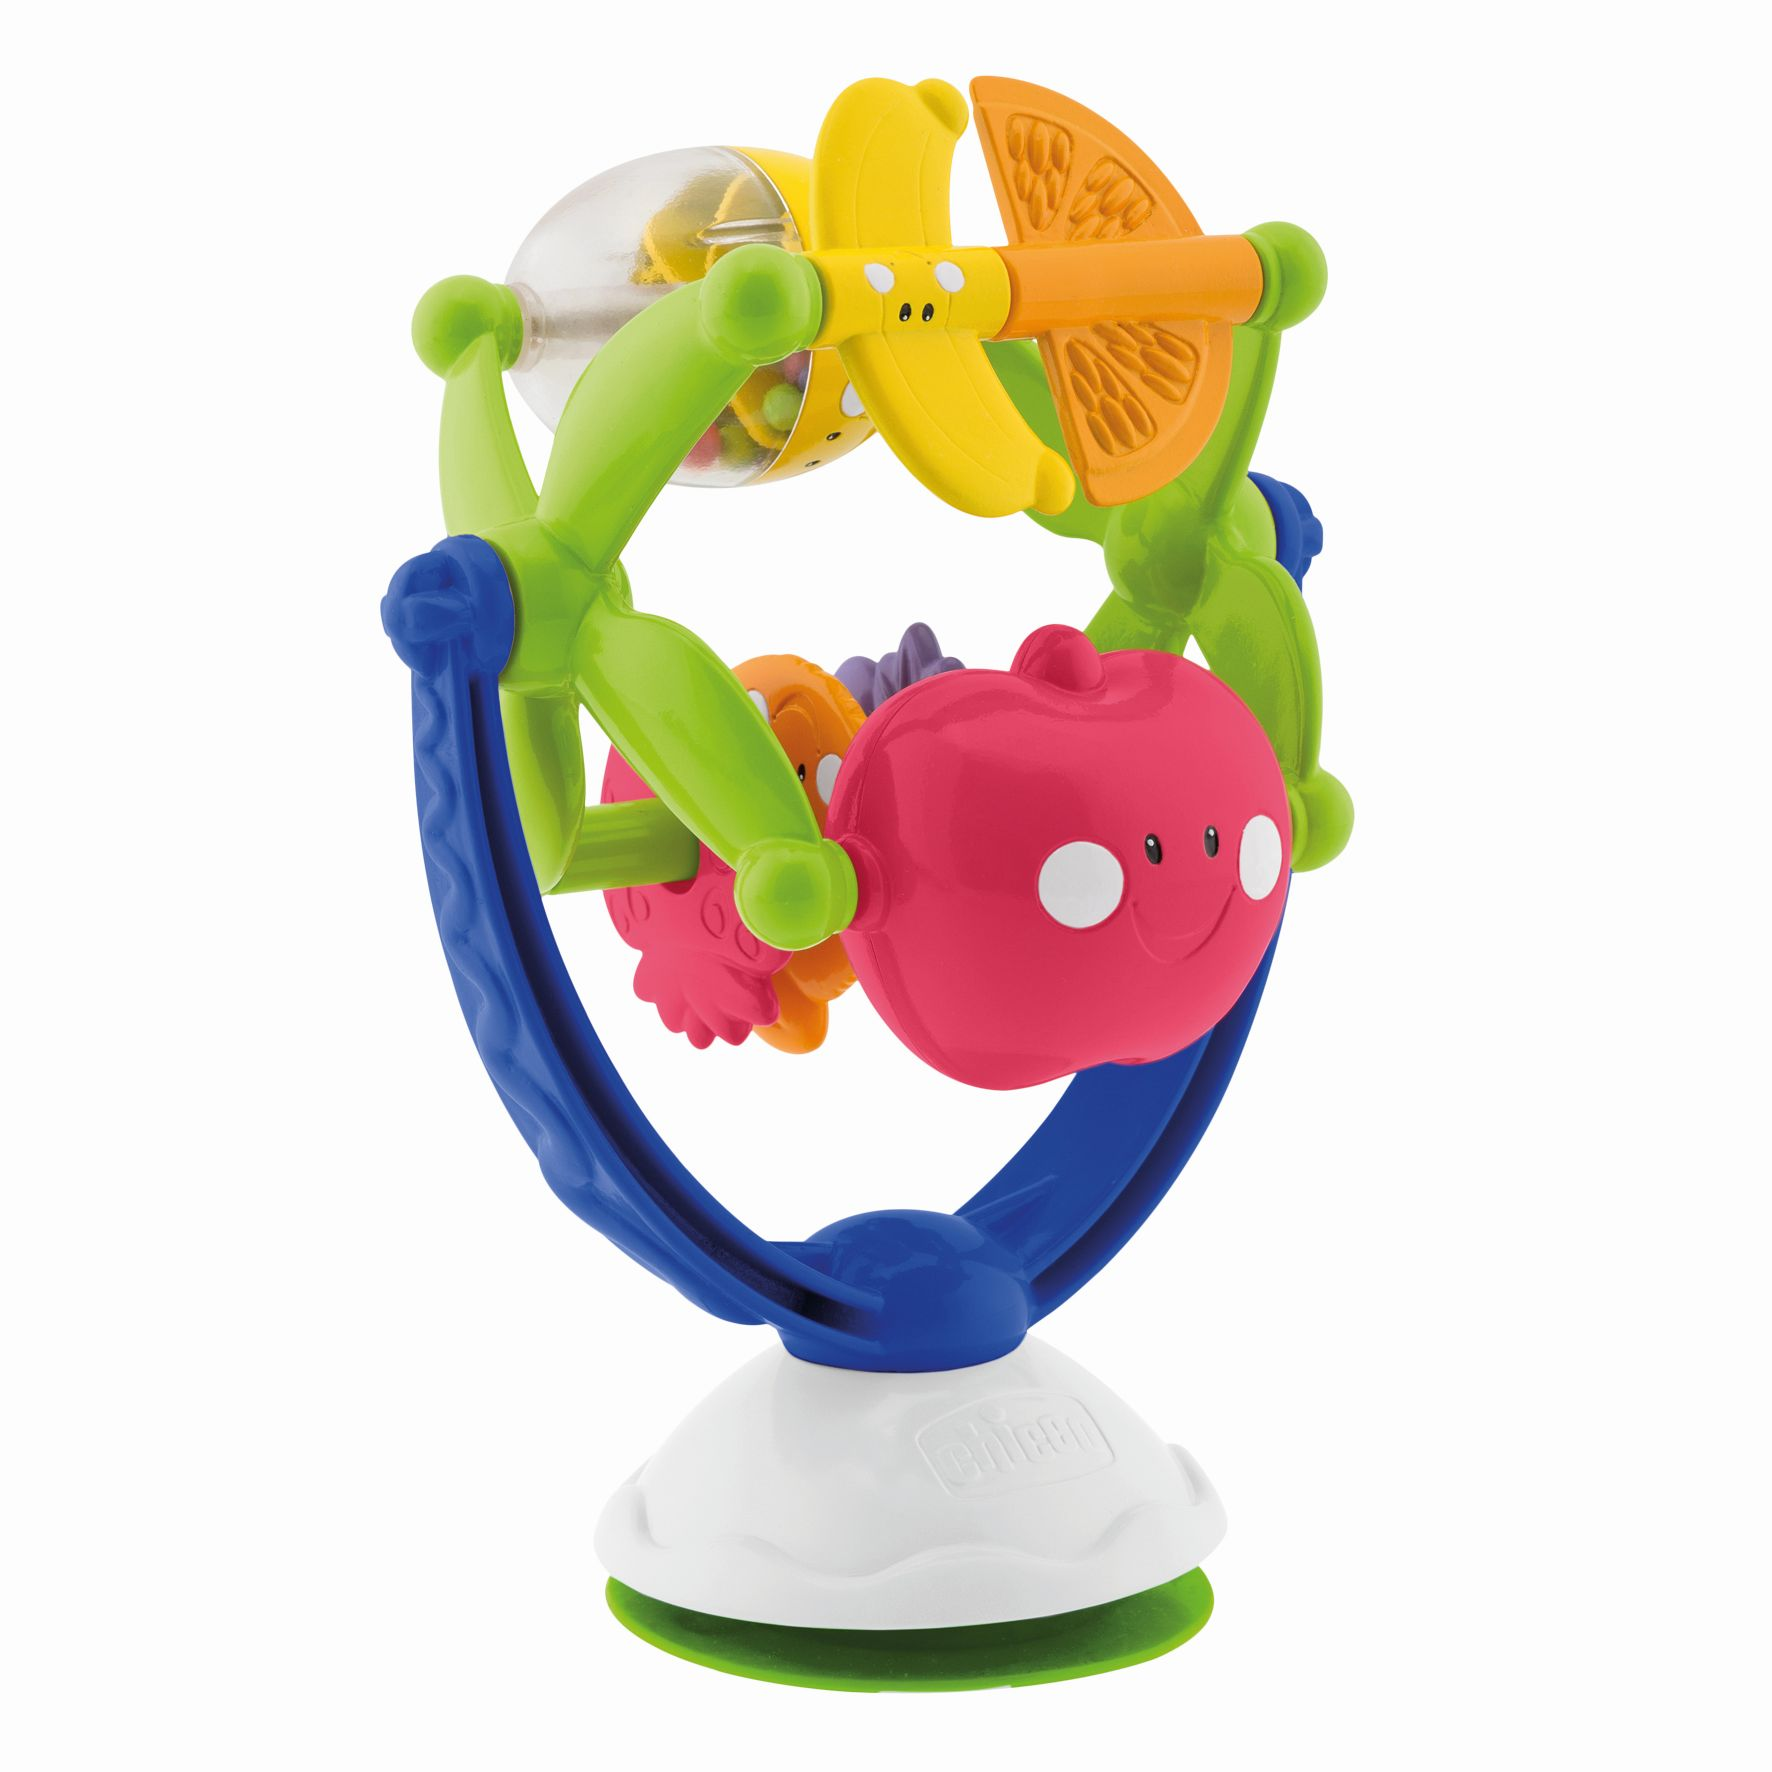 Chicco high chair toy 2016 Buy at kidsroom Toys